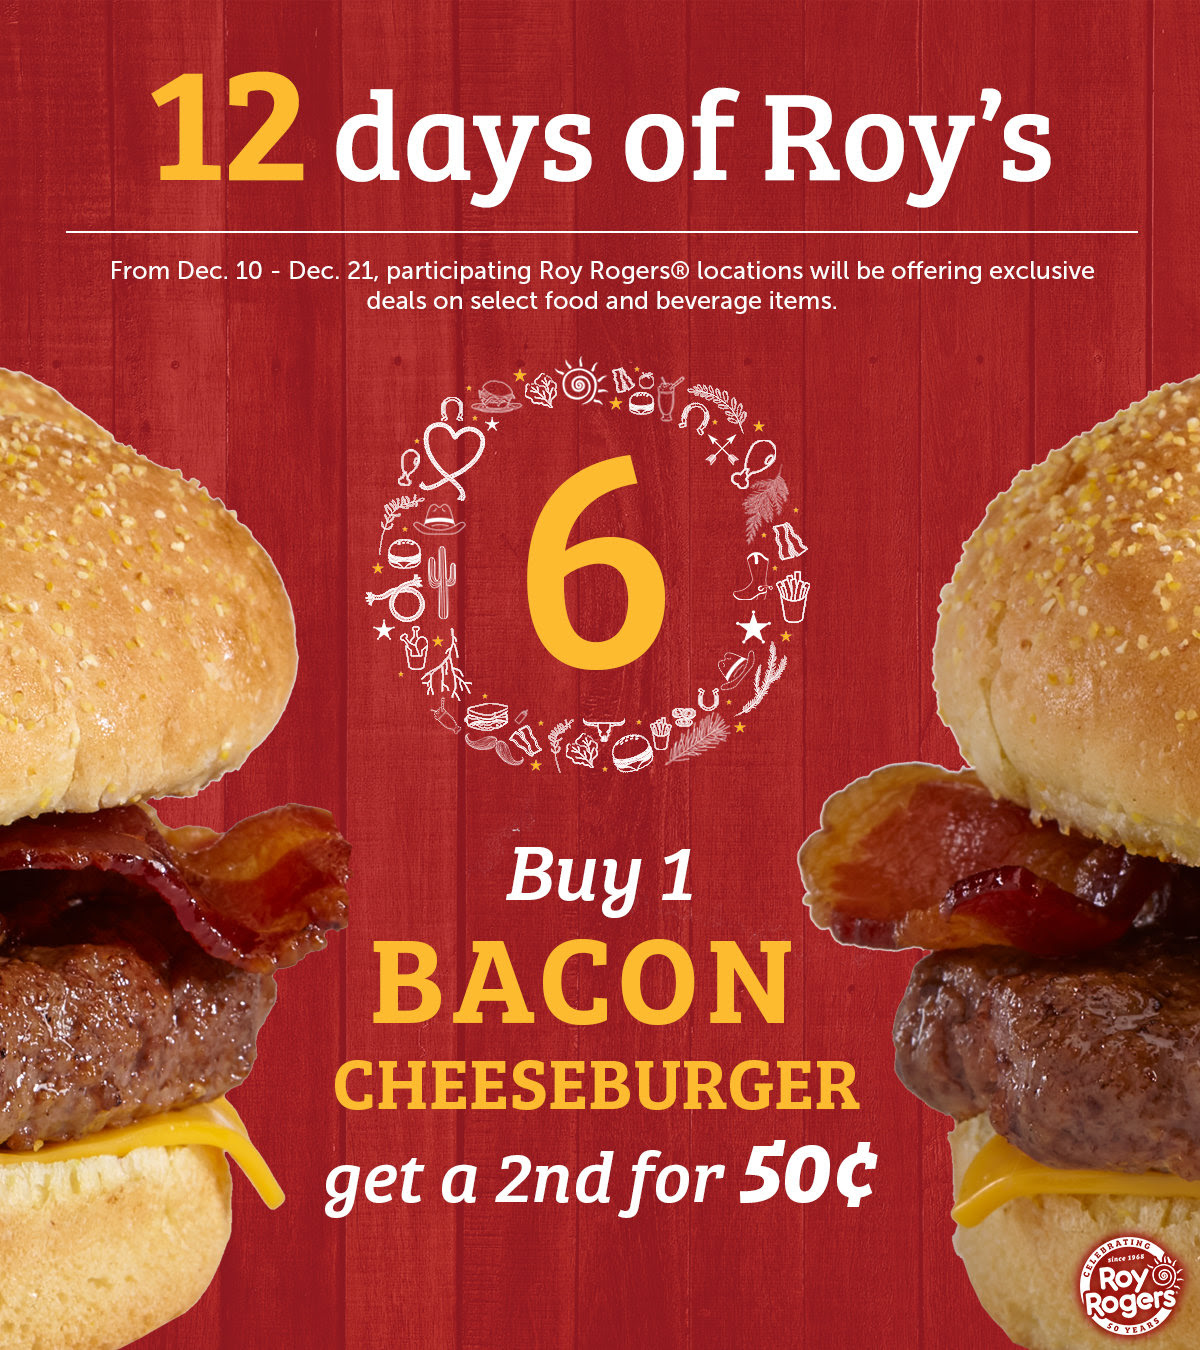 Roy Rogers Coupon October 2019 Second bacon cheeseburger .50 cents today at Roy Rogers restaurants